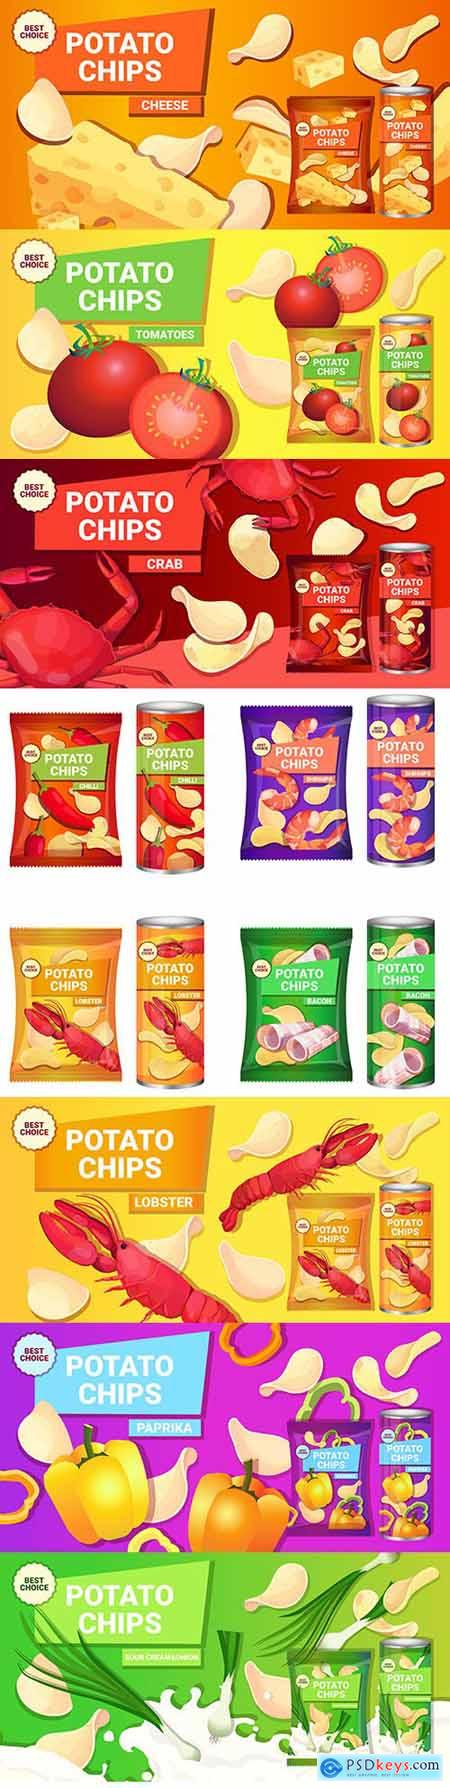 Potato chips brand packaging different tastes design template